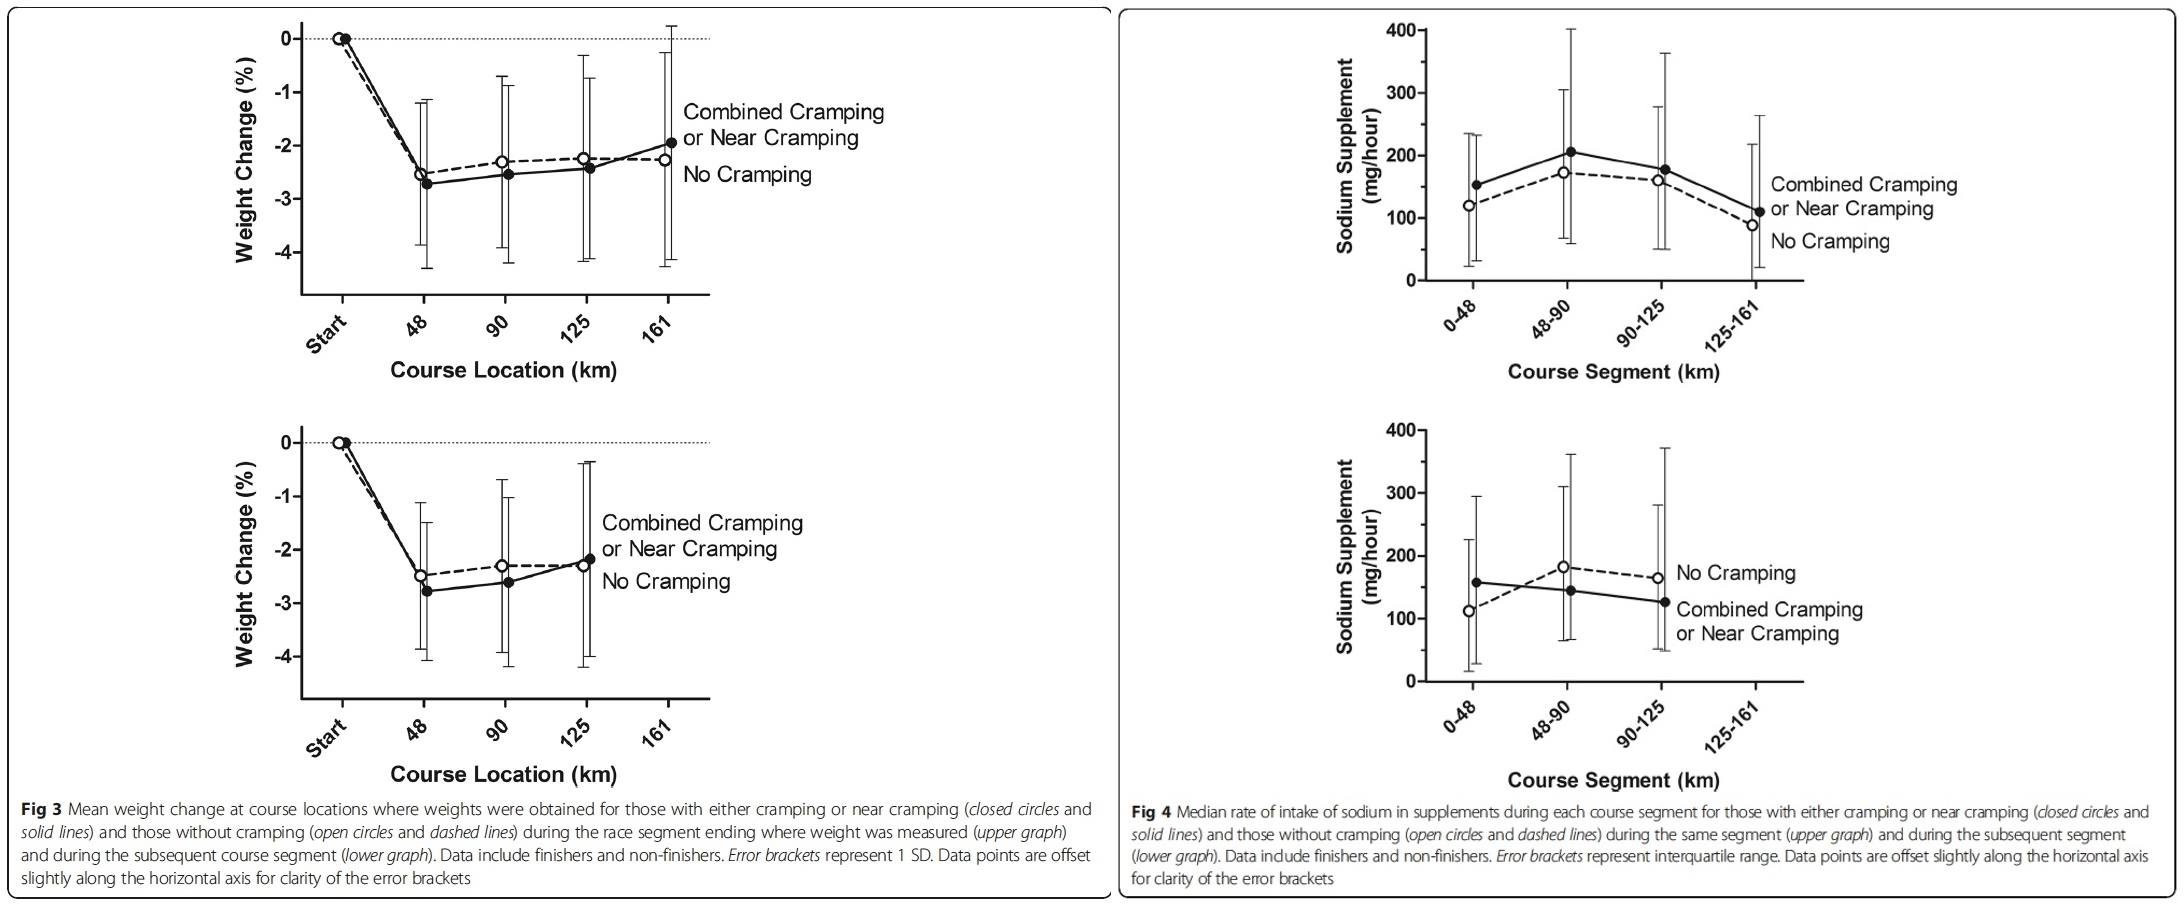 Exercise-Associated Cramping images 2 and 3